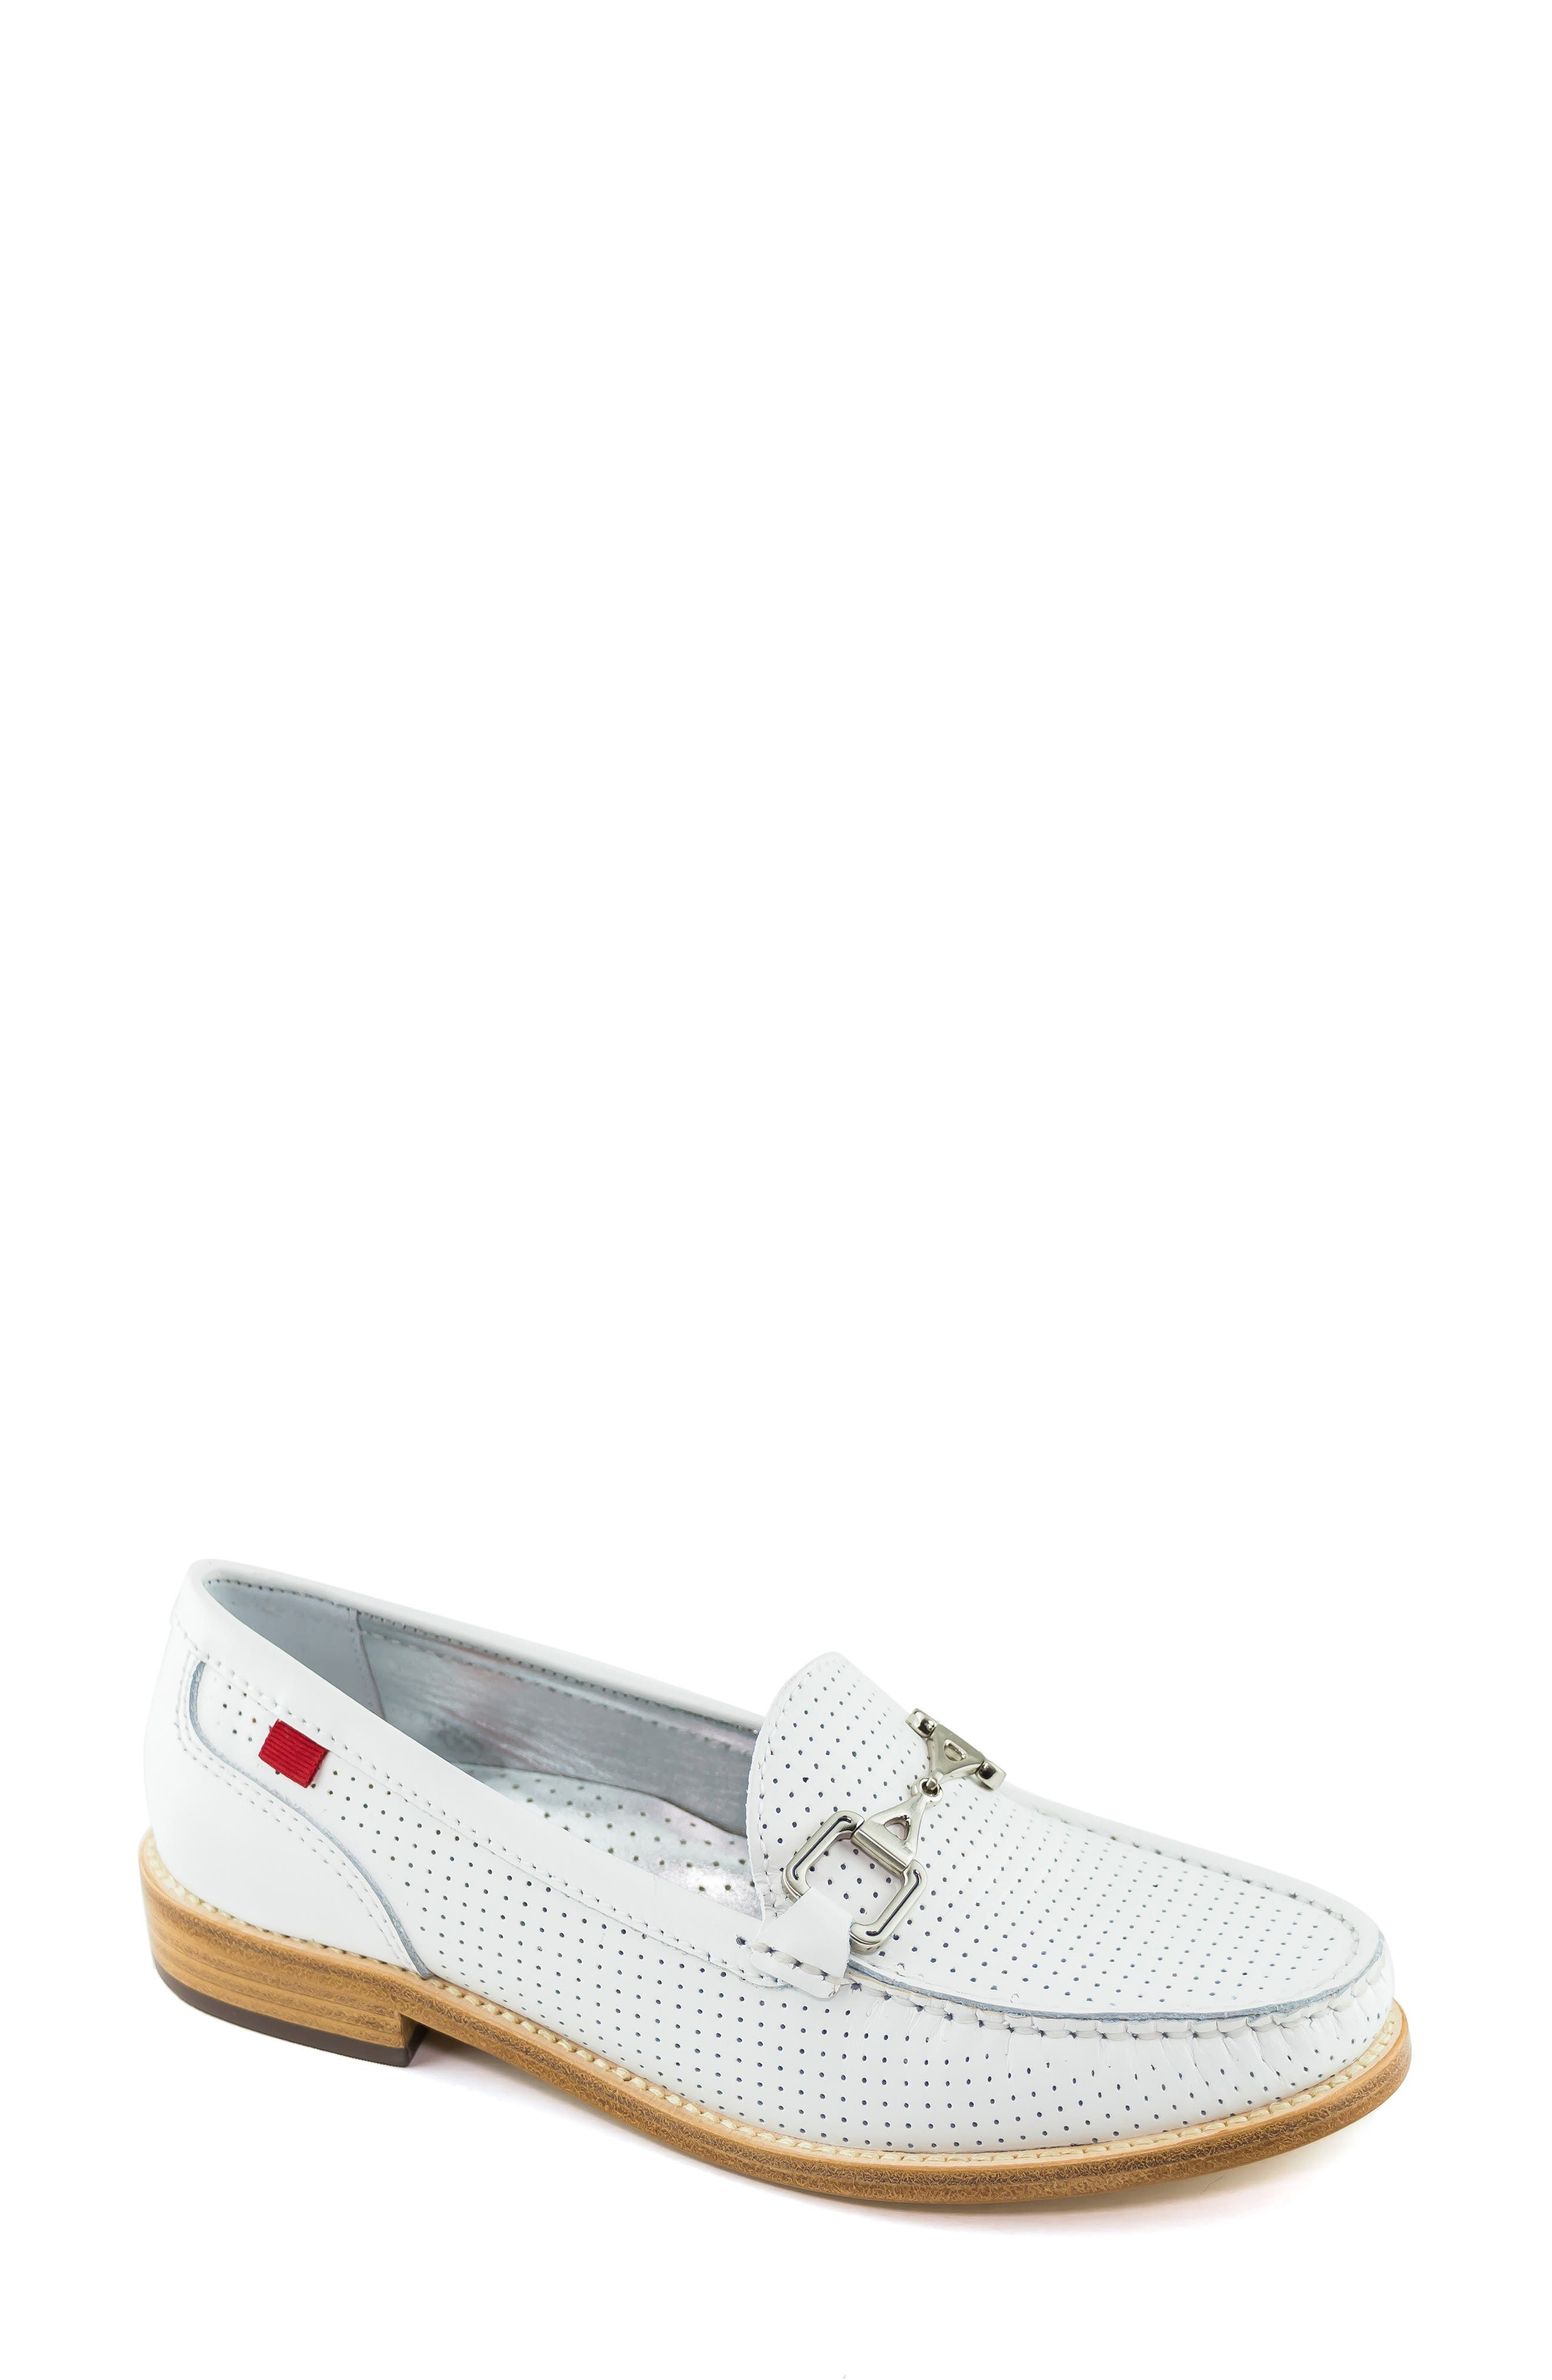 MARC JOSEPH NEW YORK Park Ave Perforated Loafer, Main, color, WHITE LEATHER